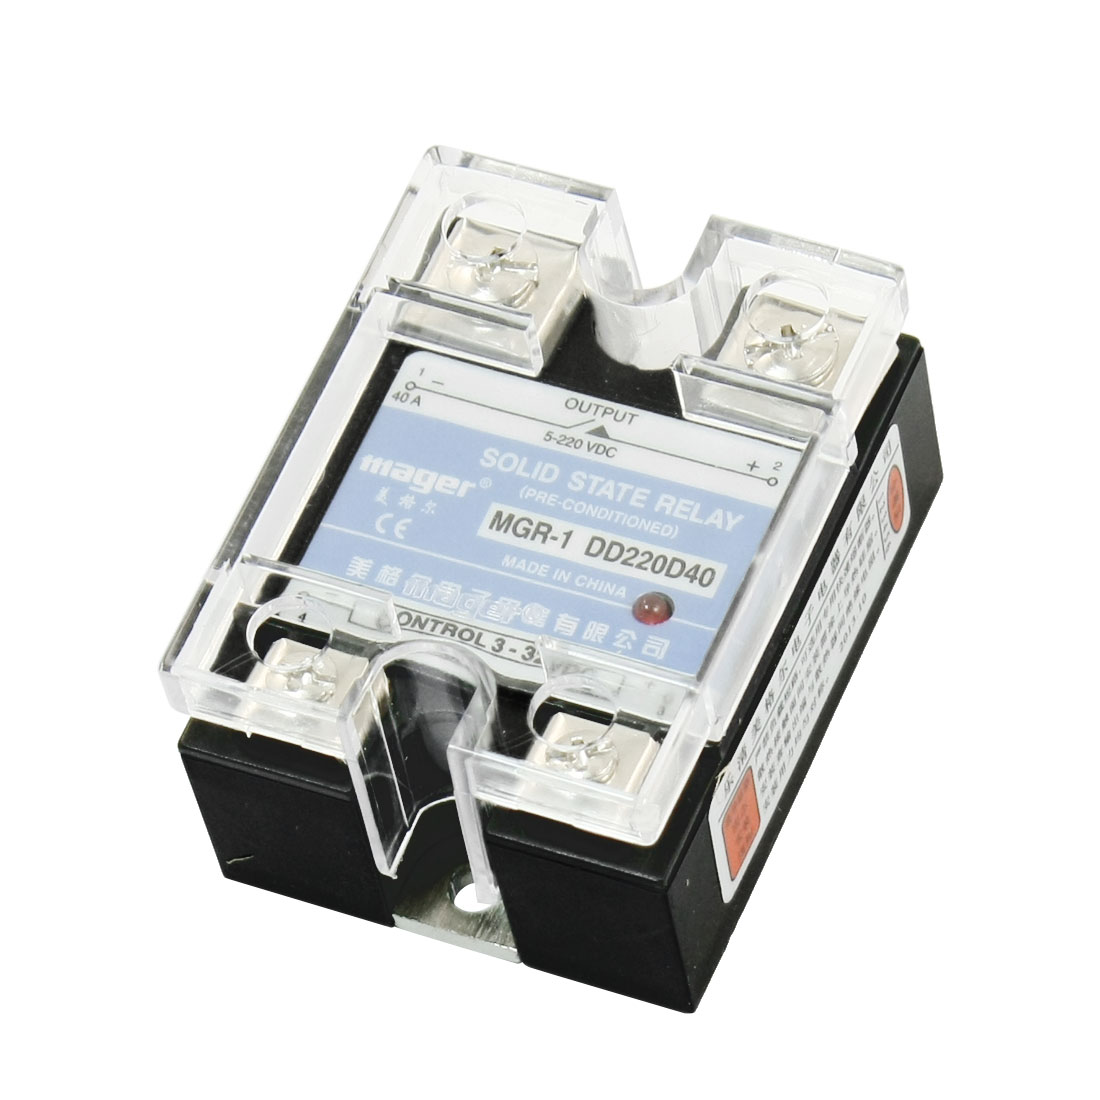 MGR-1DD220D40 DC-DC DC3-32V DC5-220V 40A 4 Screw Terminal Single Phase Clear Cover SSR Solid State Relay